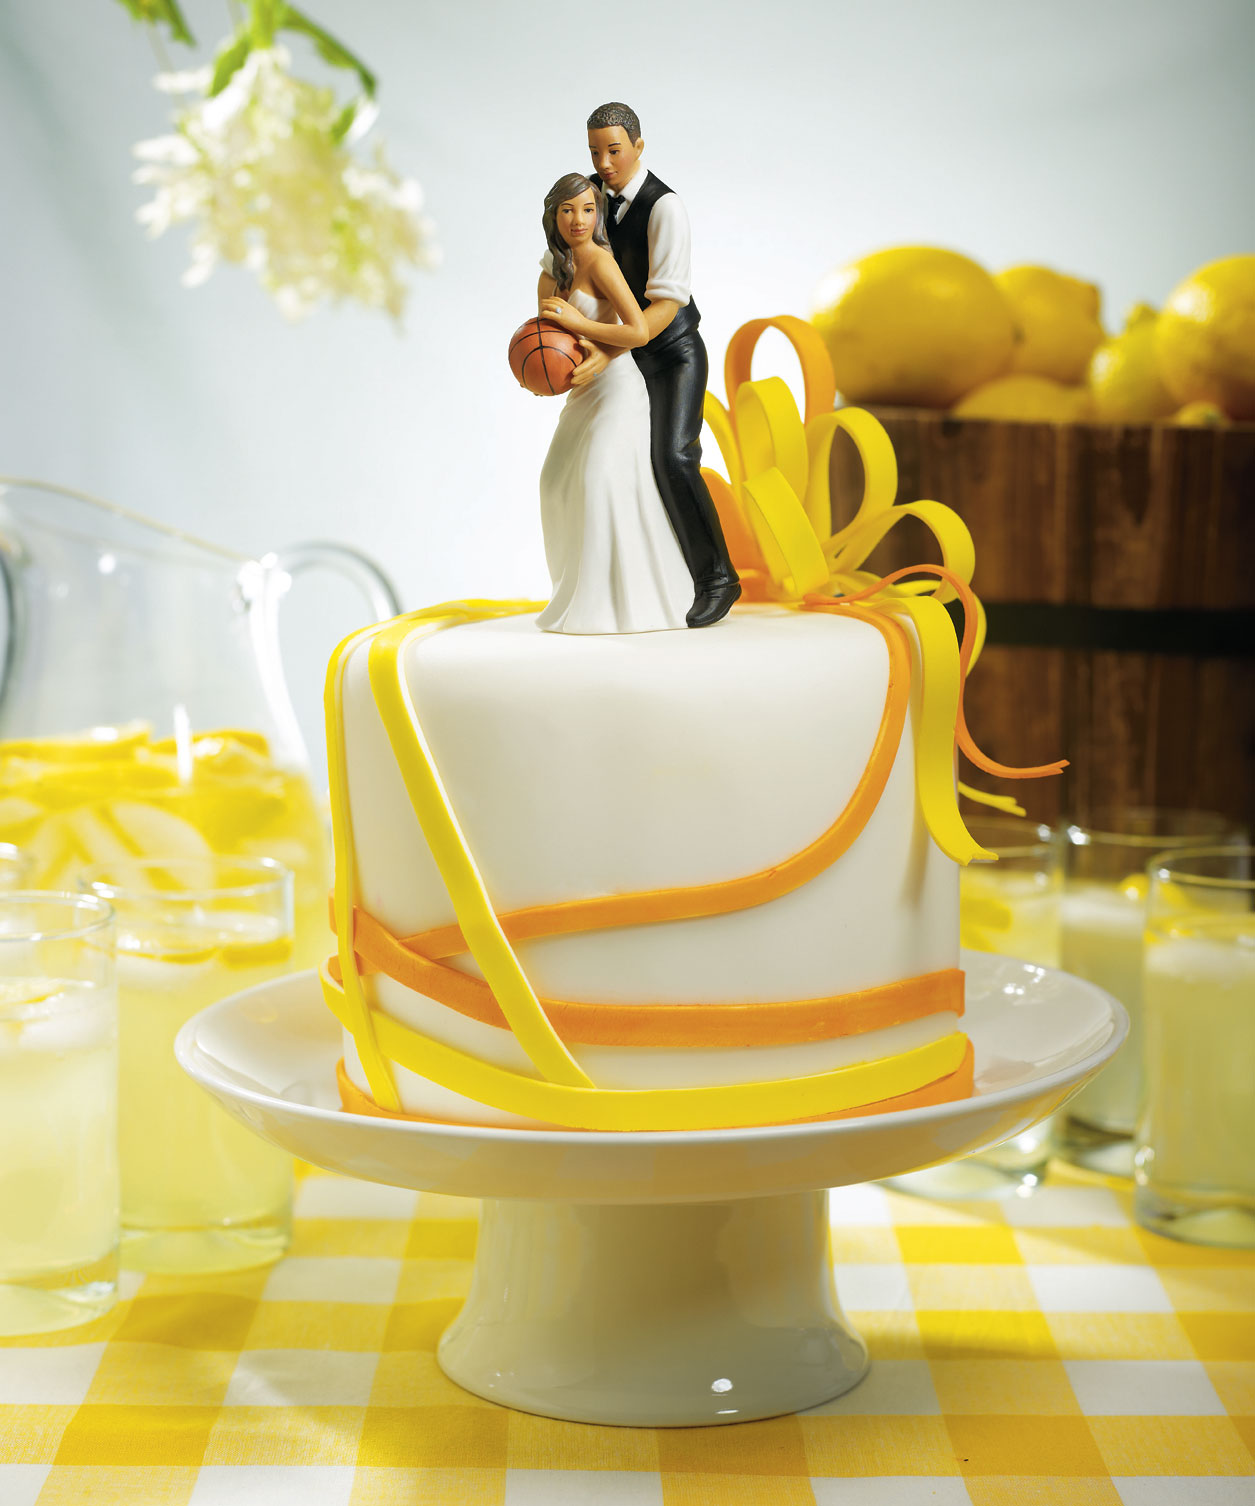 couture chair covers and events dance song jewish basketball dream team couple sports wedding cake topper - bridal